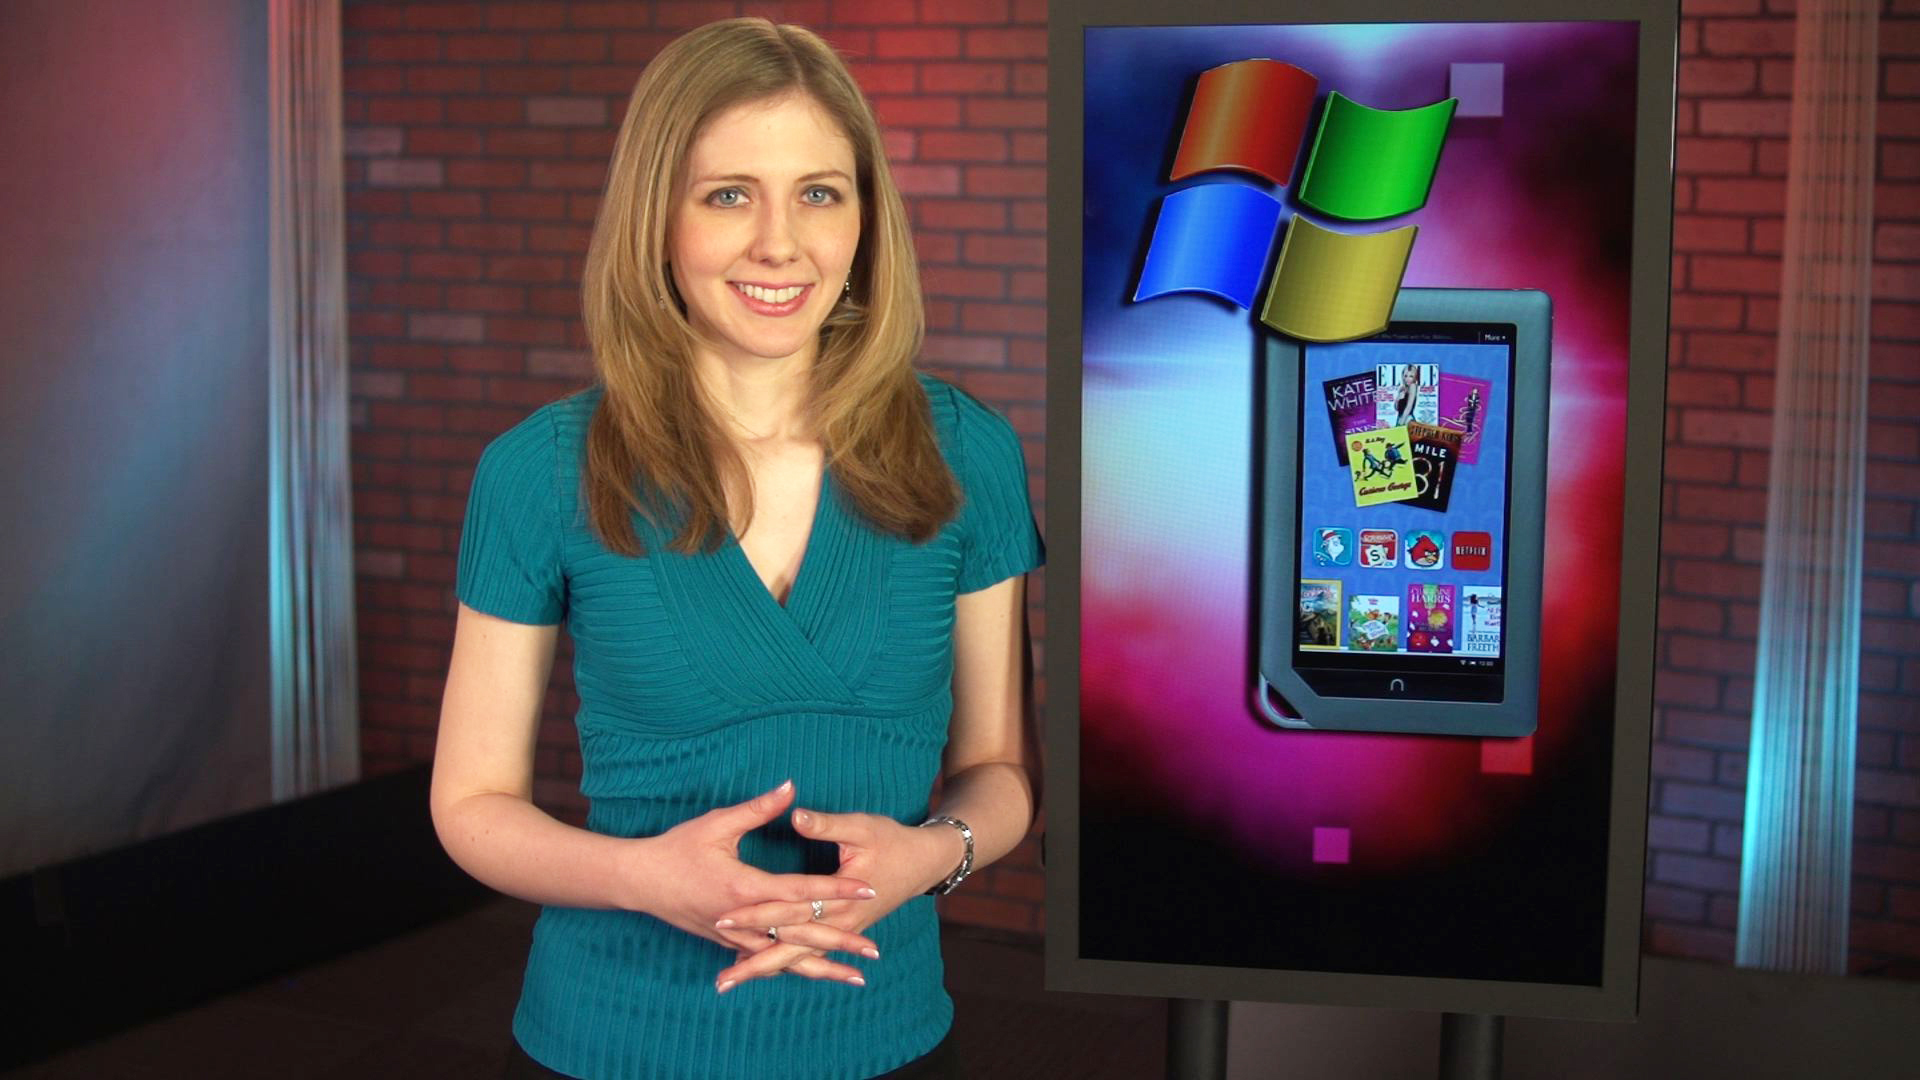 Video: Microsoft's got the hots for Nook